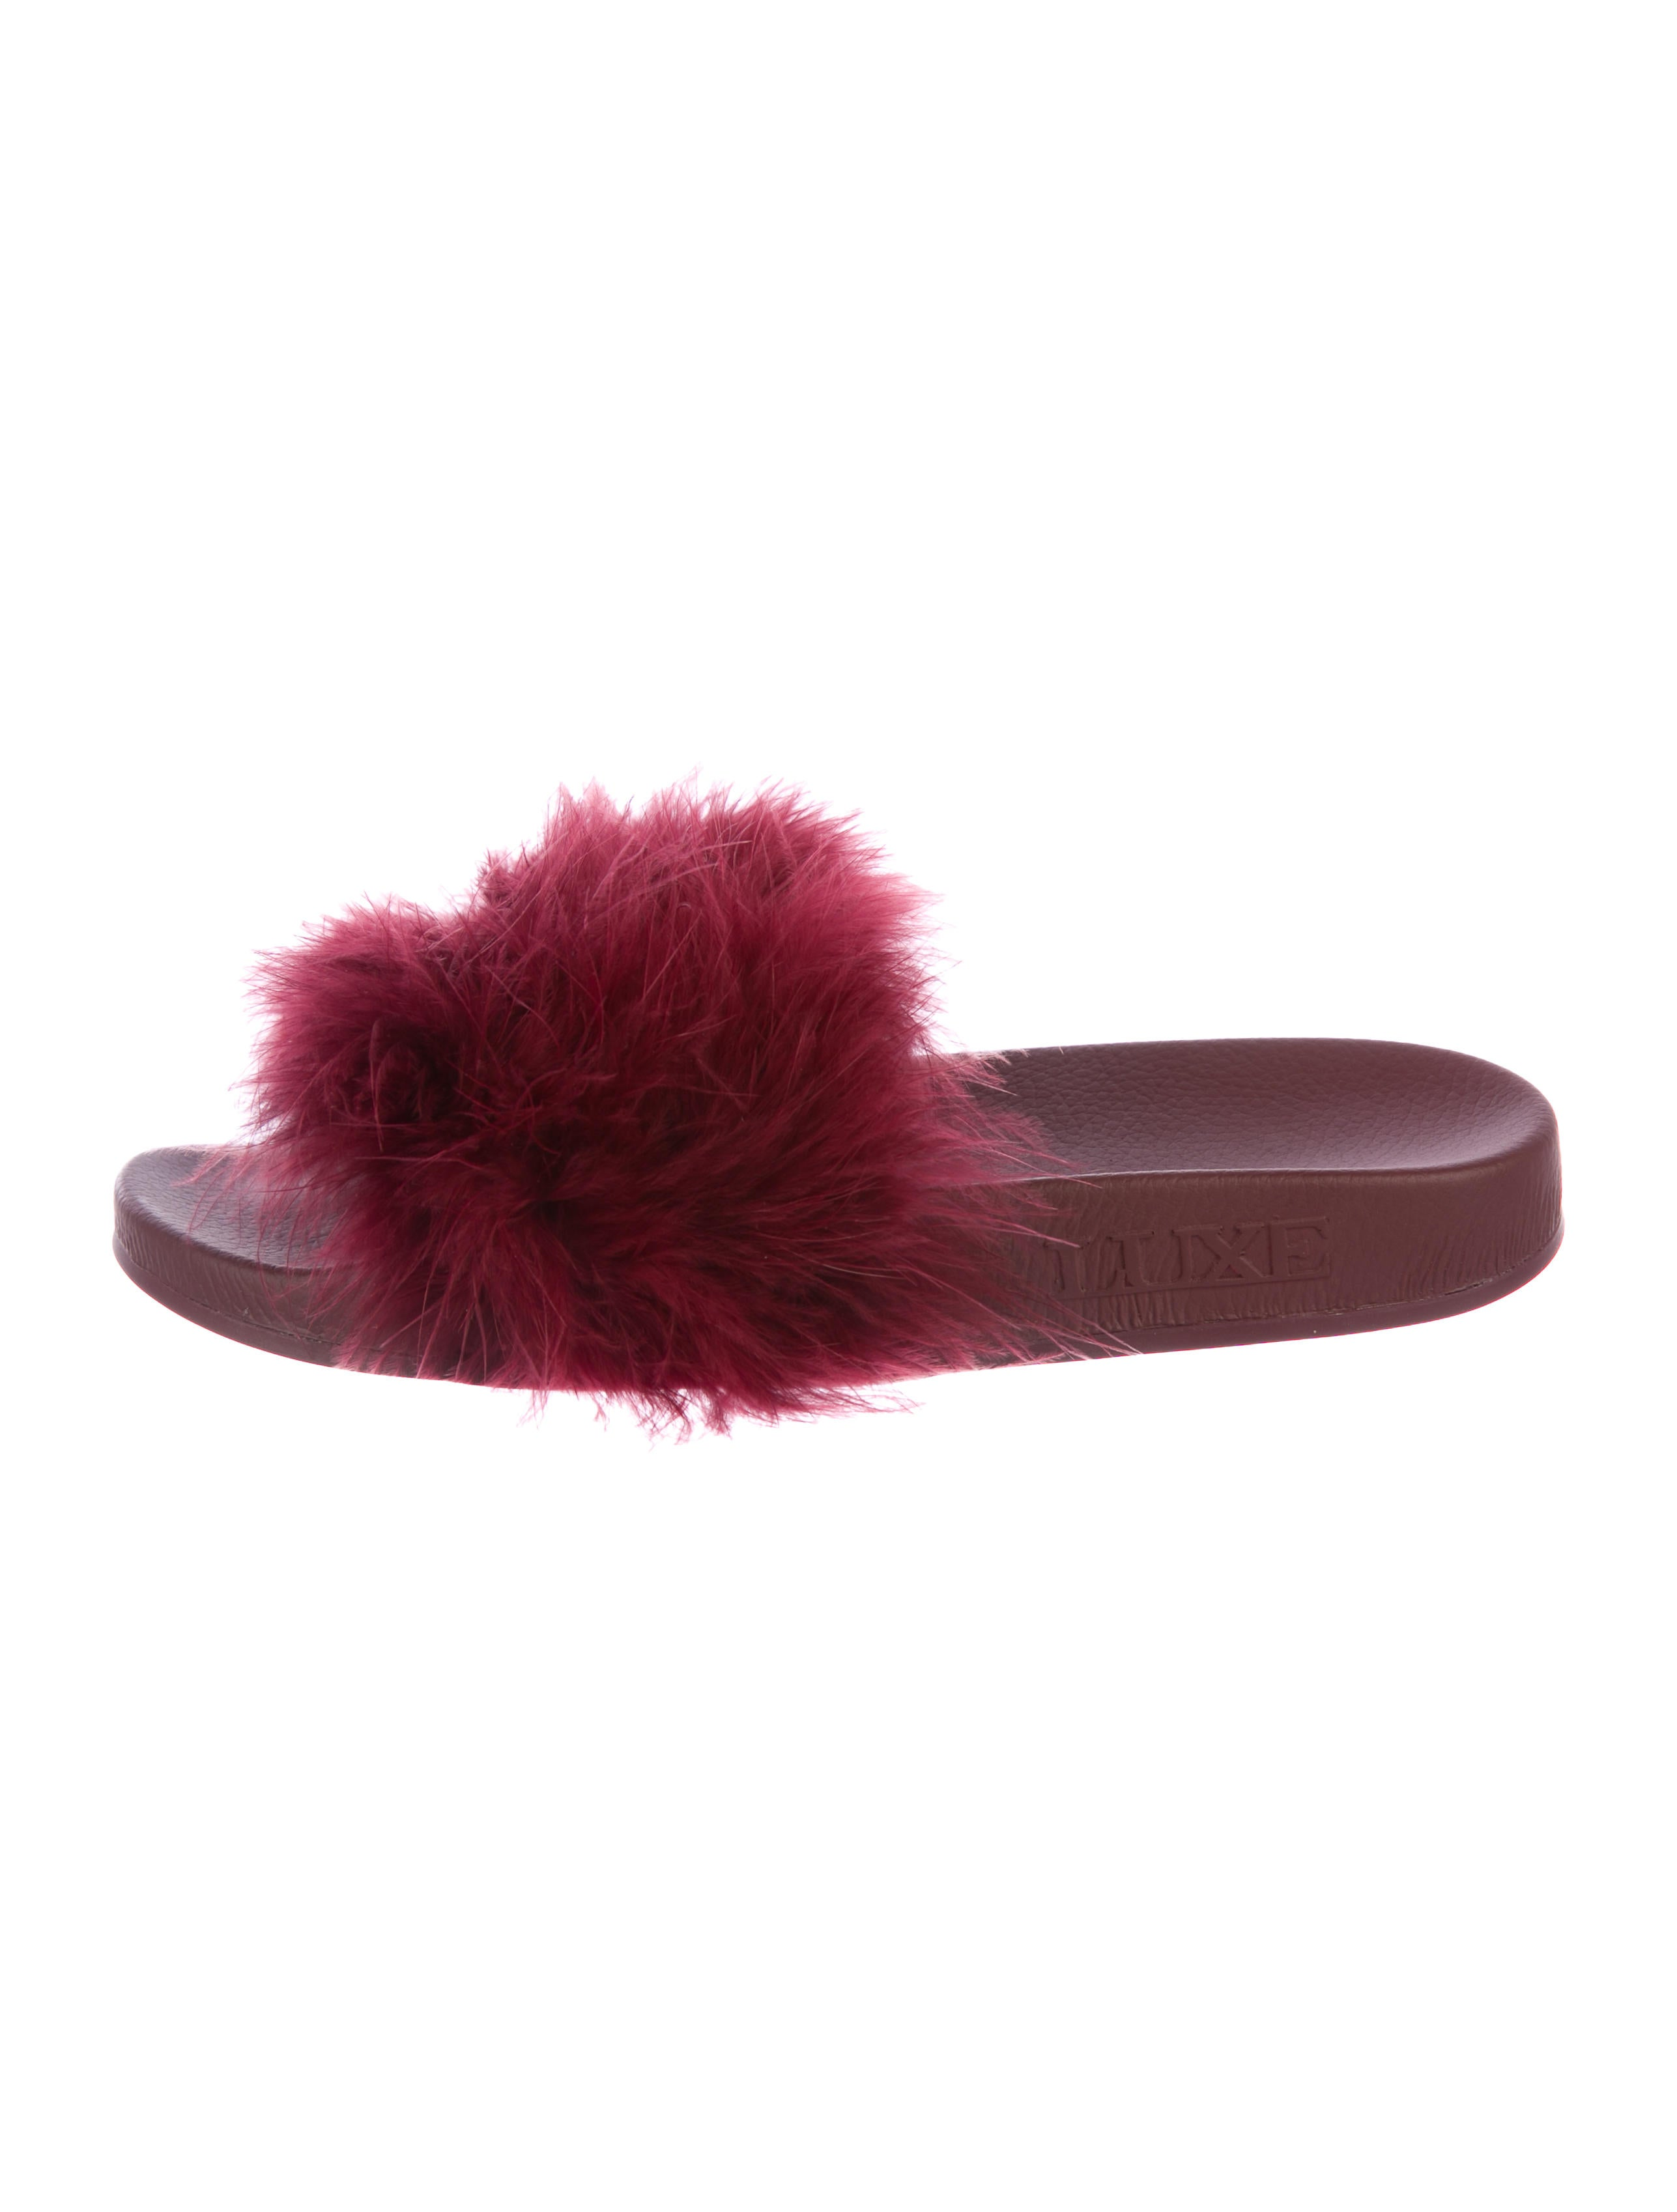 Australia Luxe Collective Feather-Trimmed Slide Sandals discount with credit card outlet brand new unisex buy cheap 2014 new release dates tCBdPOdxCV